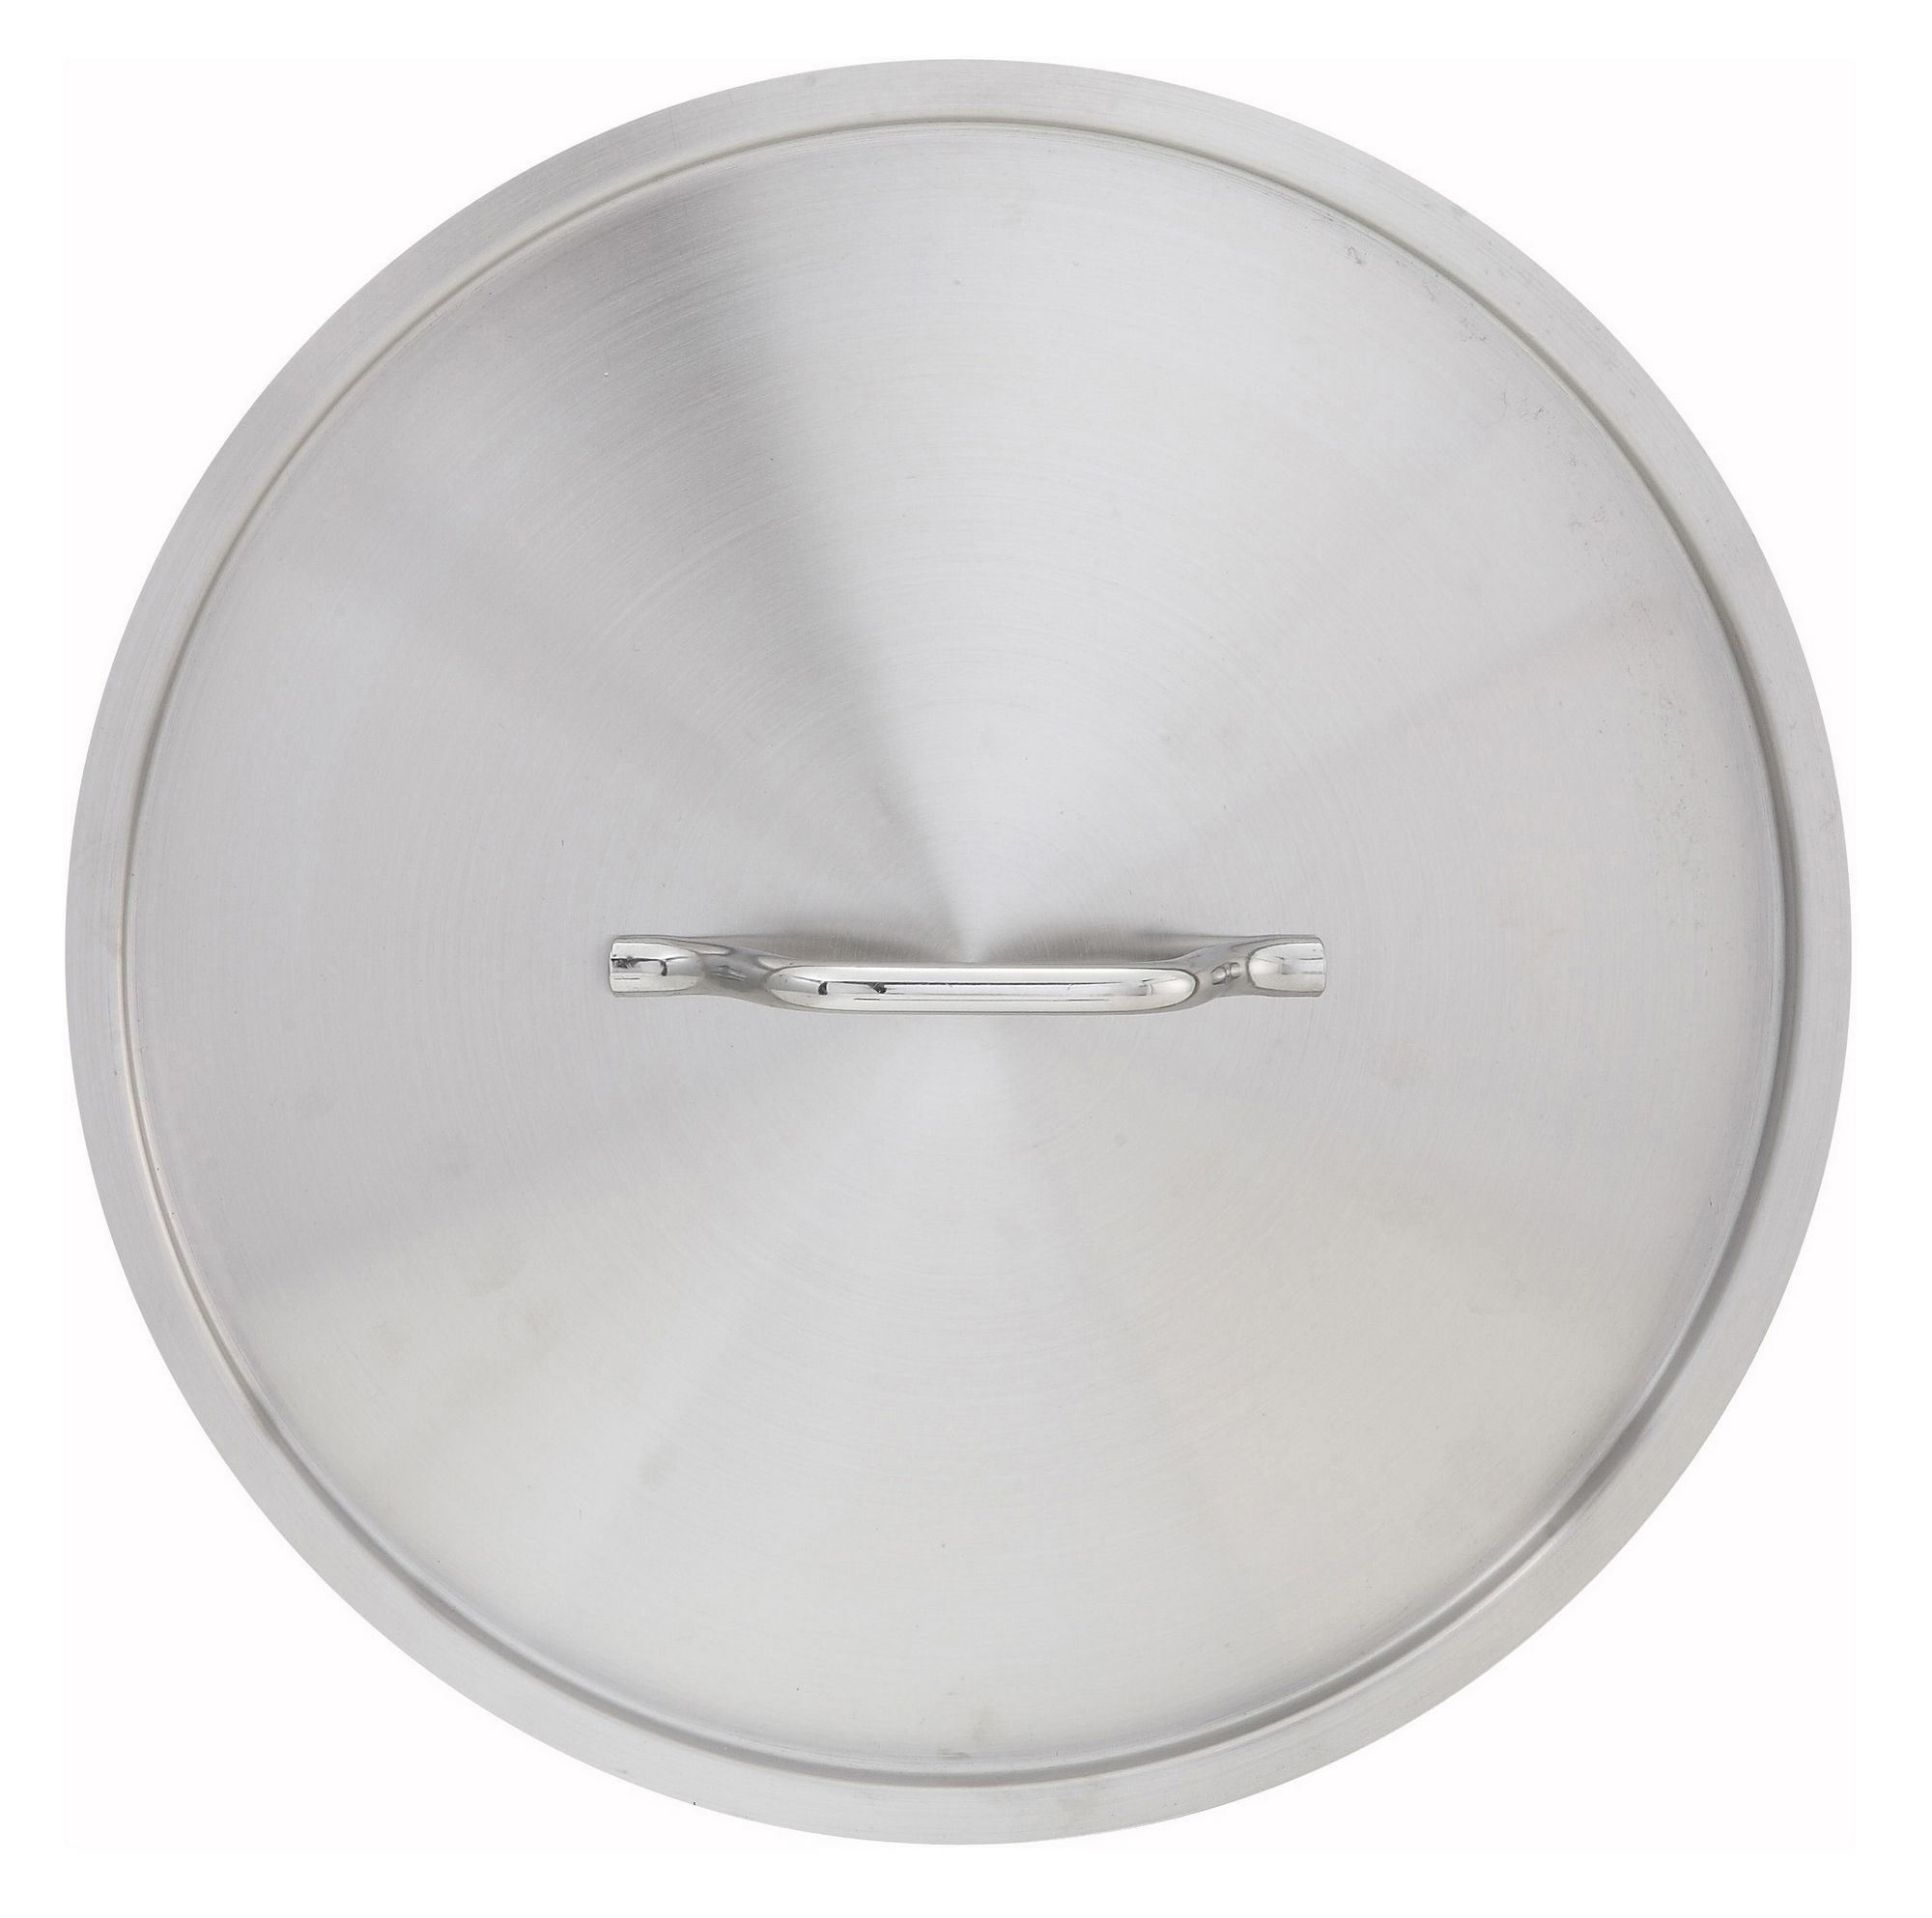 Winco sstc-40 Stainless Steel Cover for 40 Qt. Stock Pot SST-40